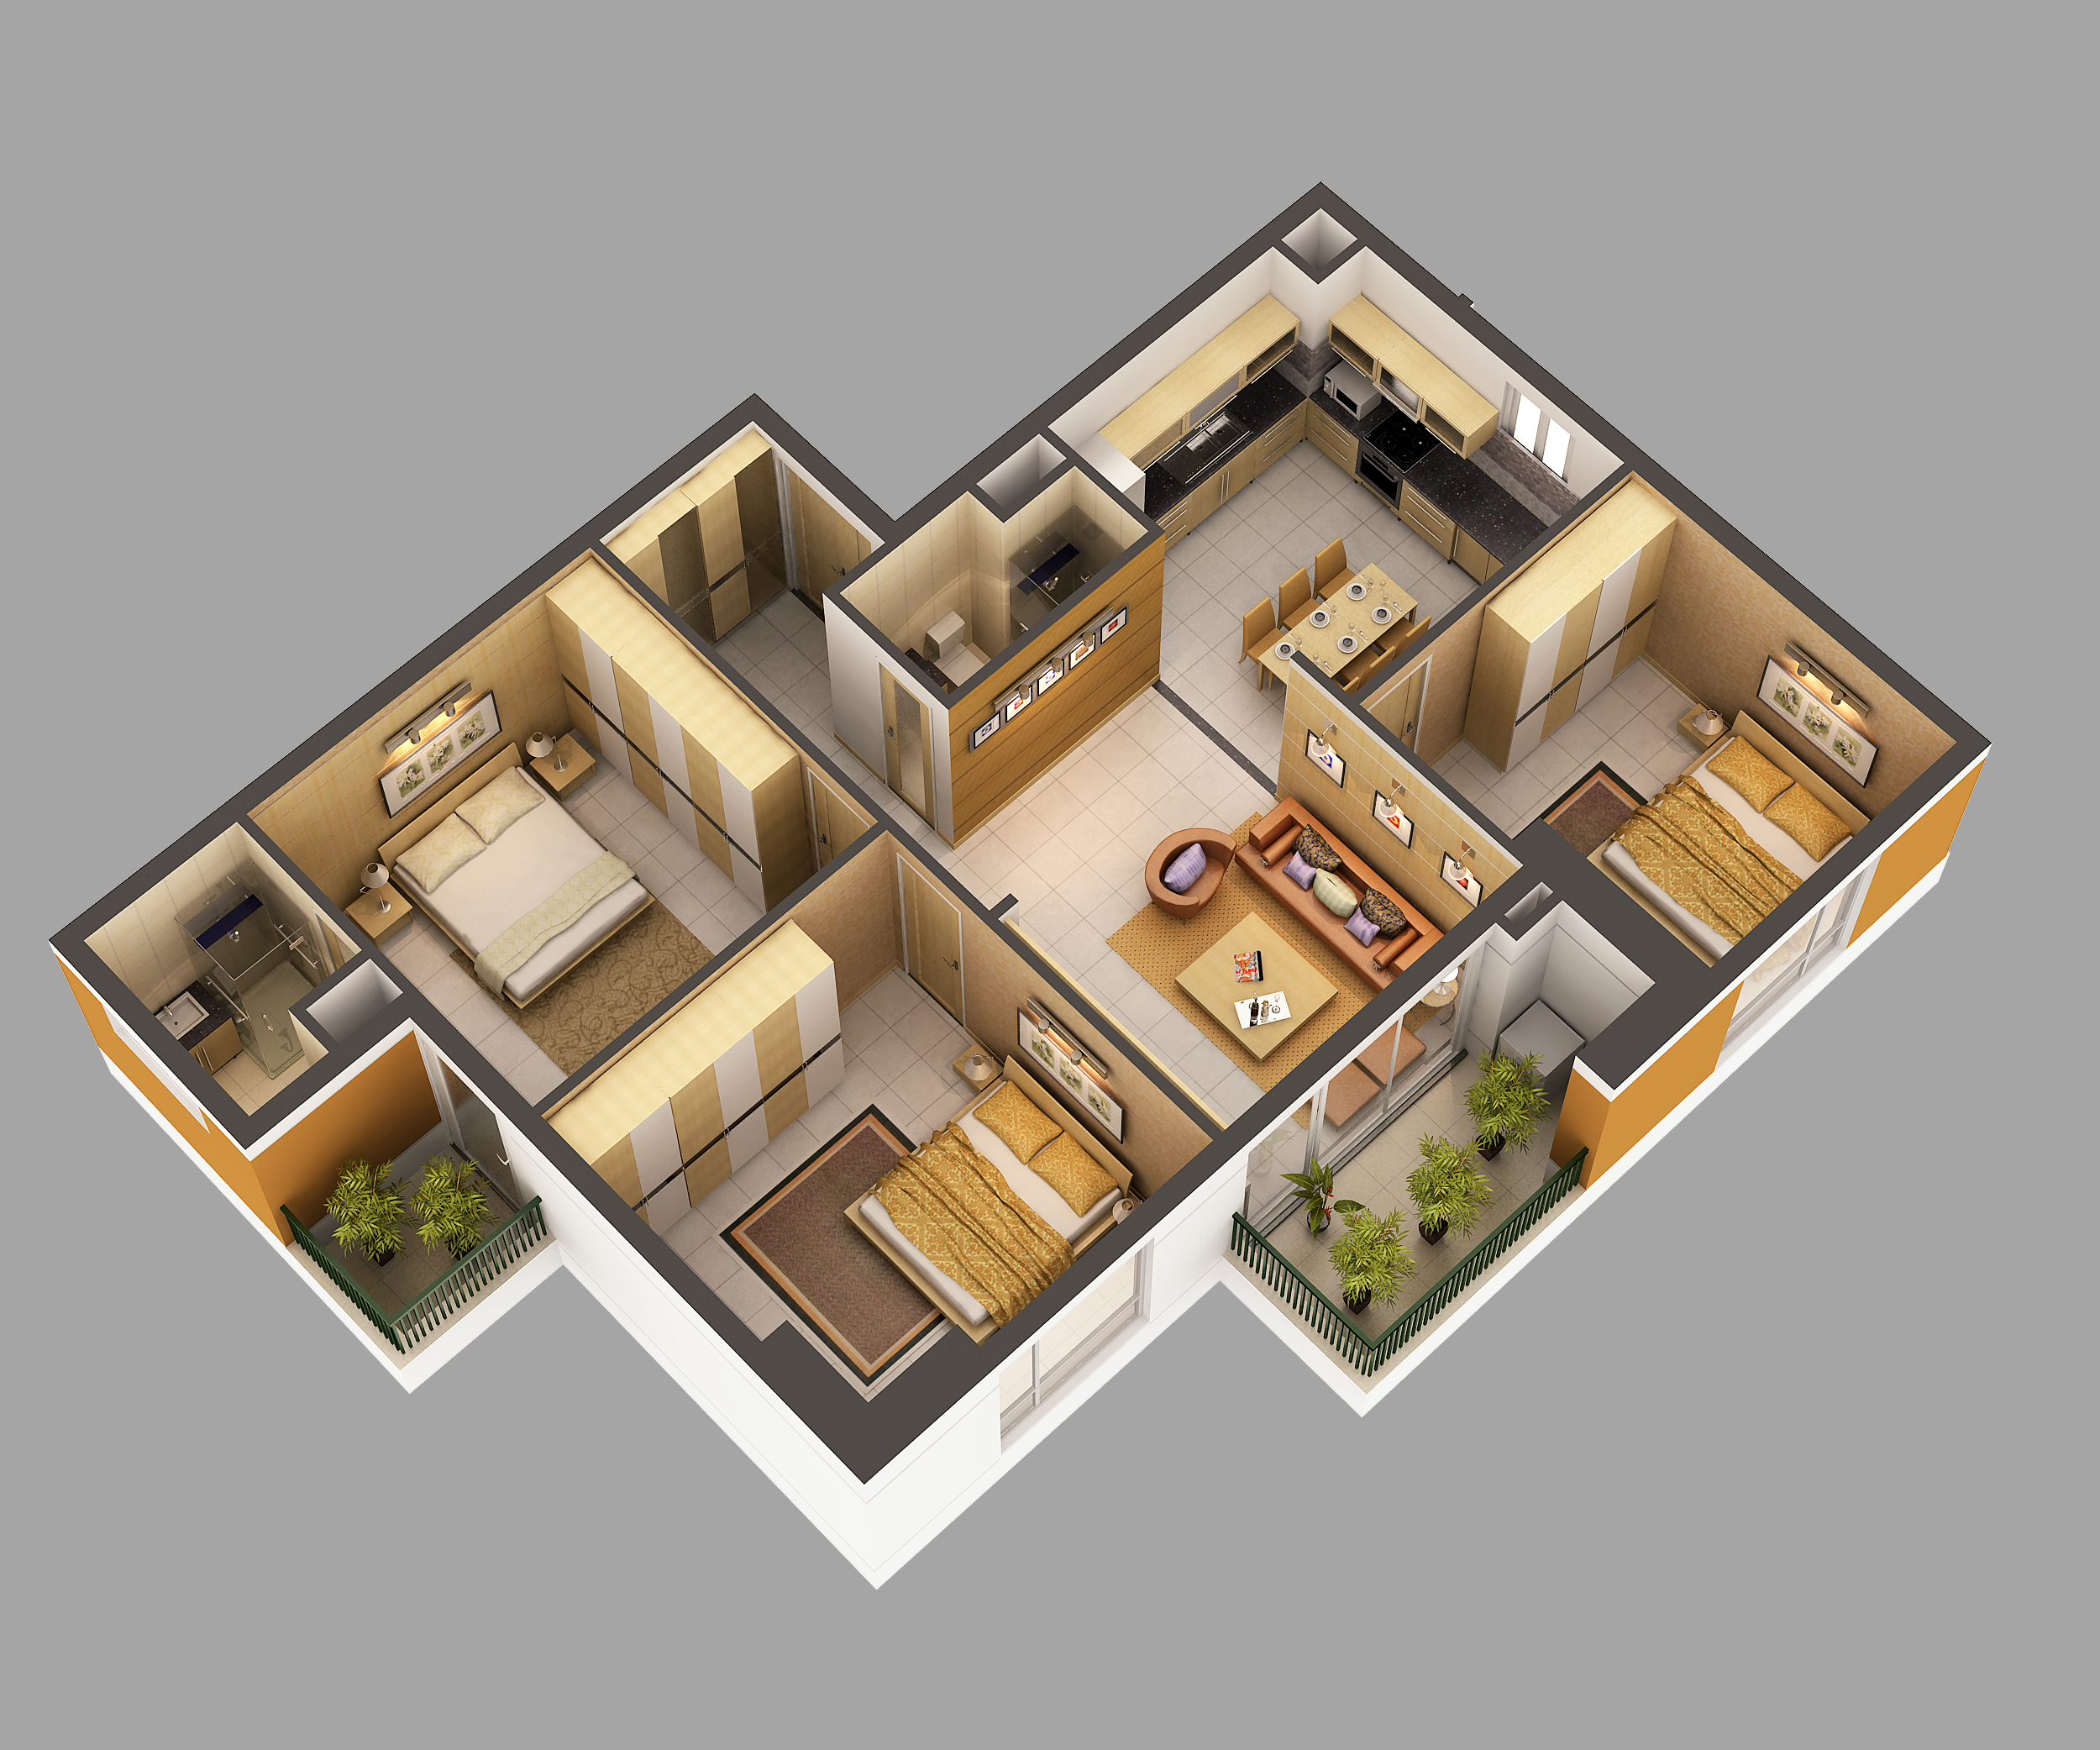 3d model home interior fully furnished 3d model max for 3d interior